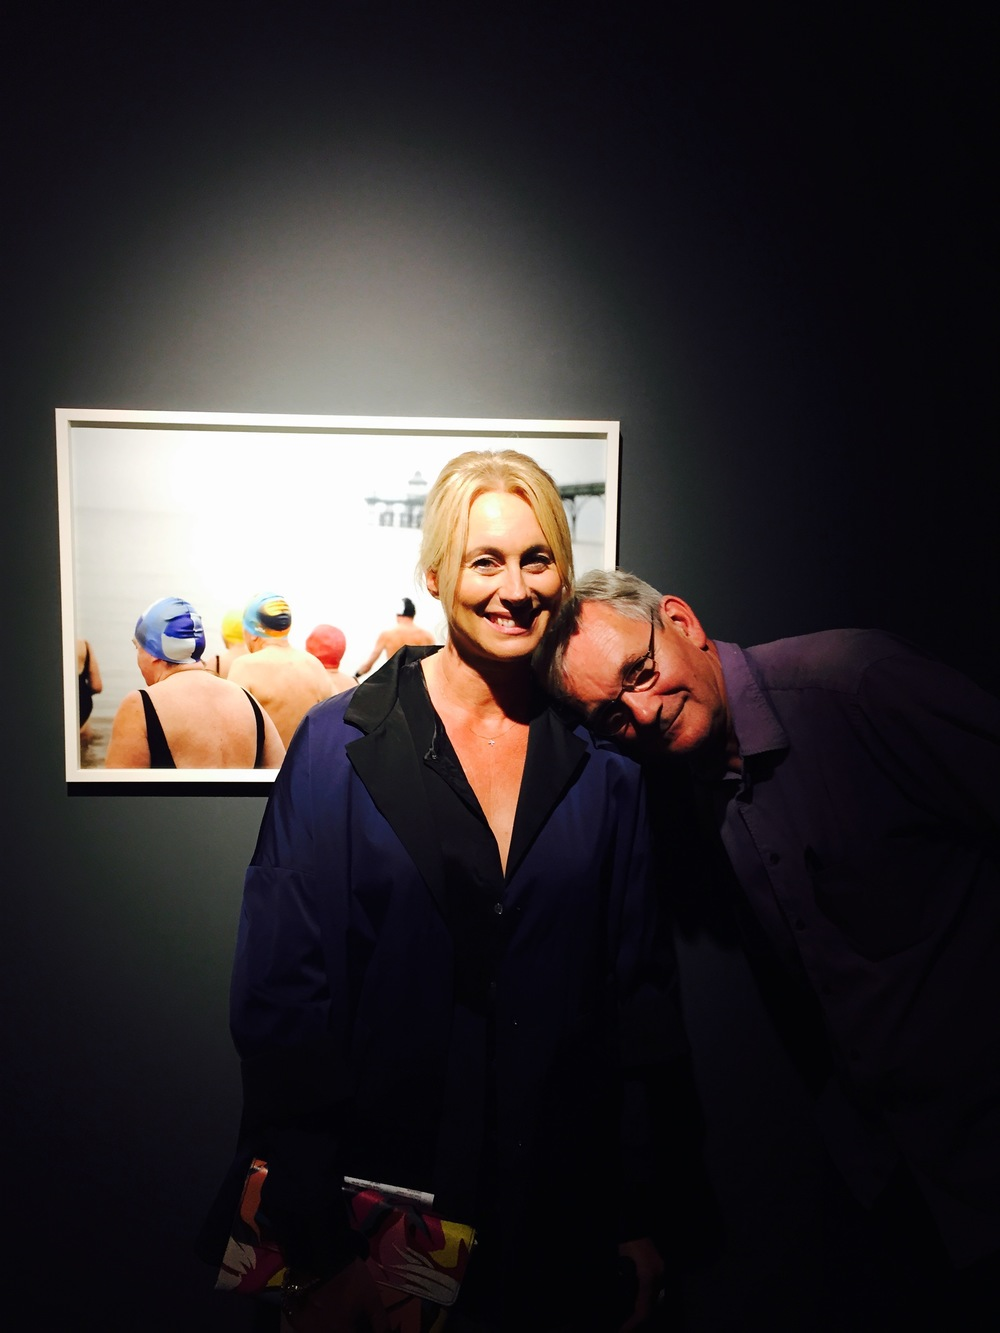 Me and the Great Man, Martin Parr